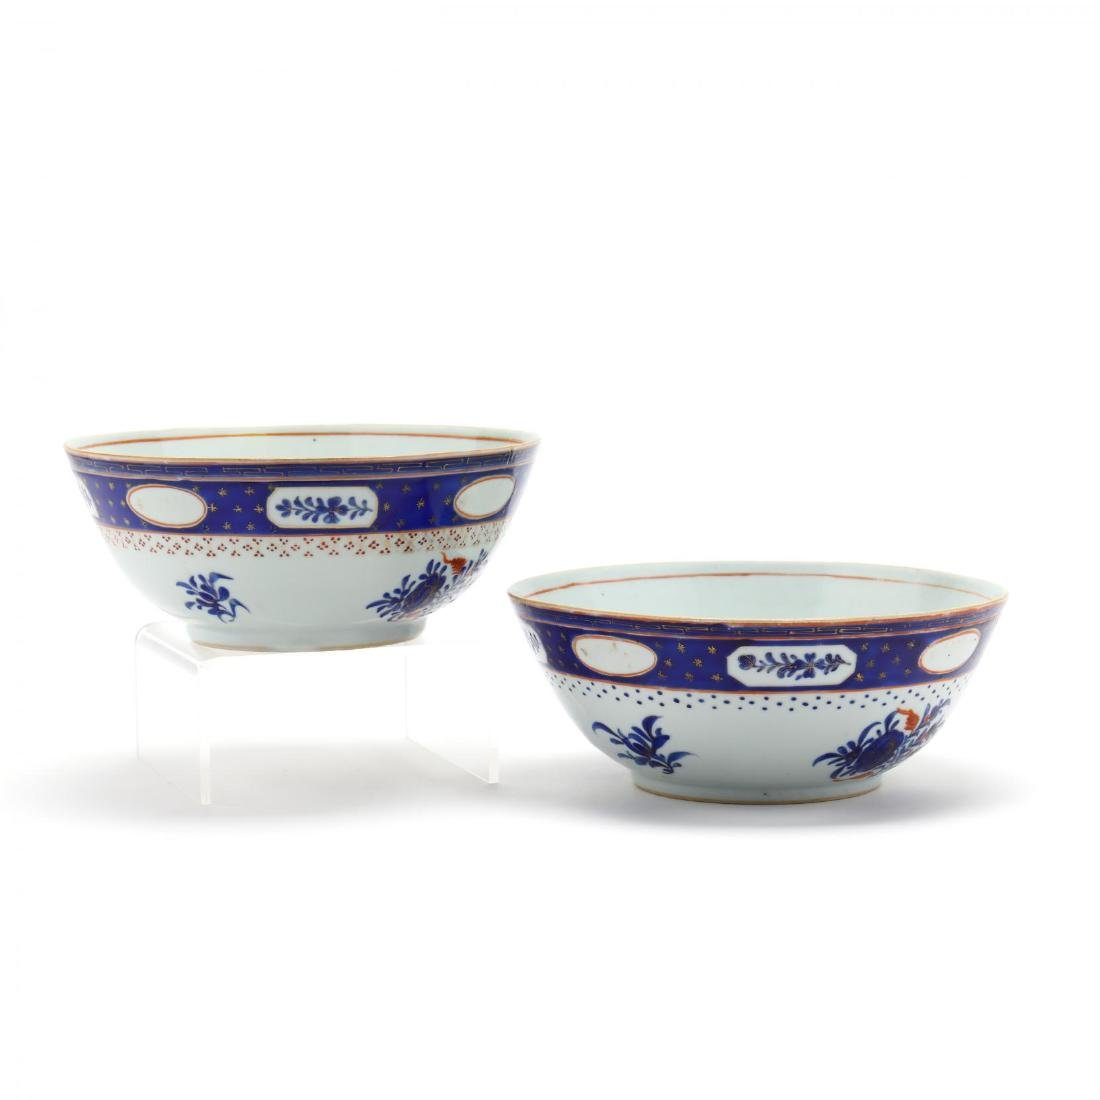 A Pair of Chinese Export Porcelain Bowls - 2